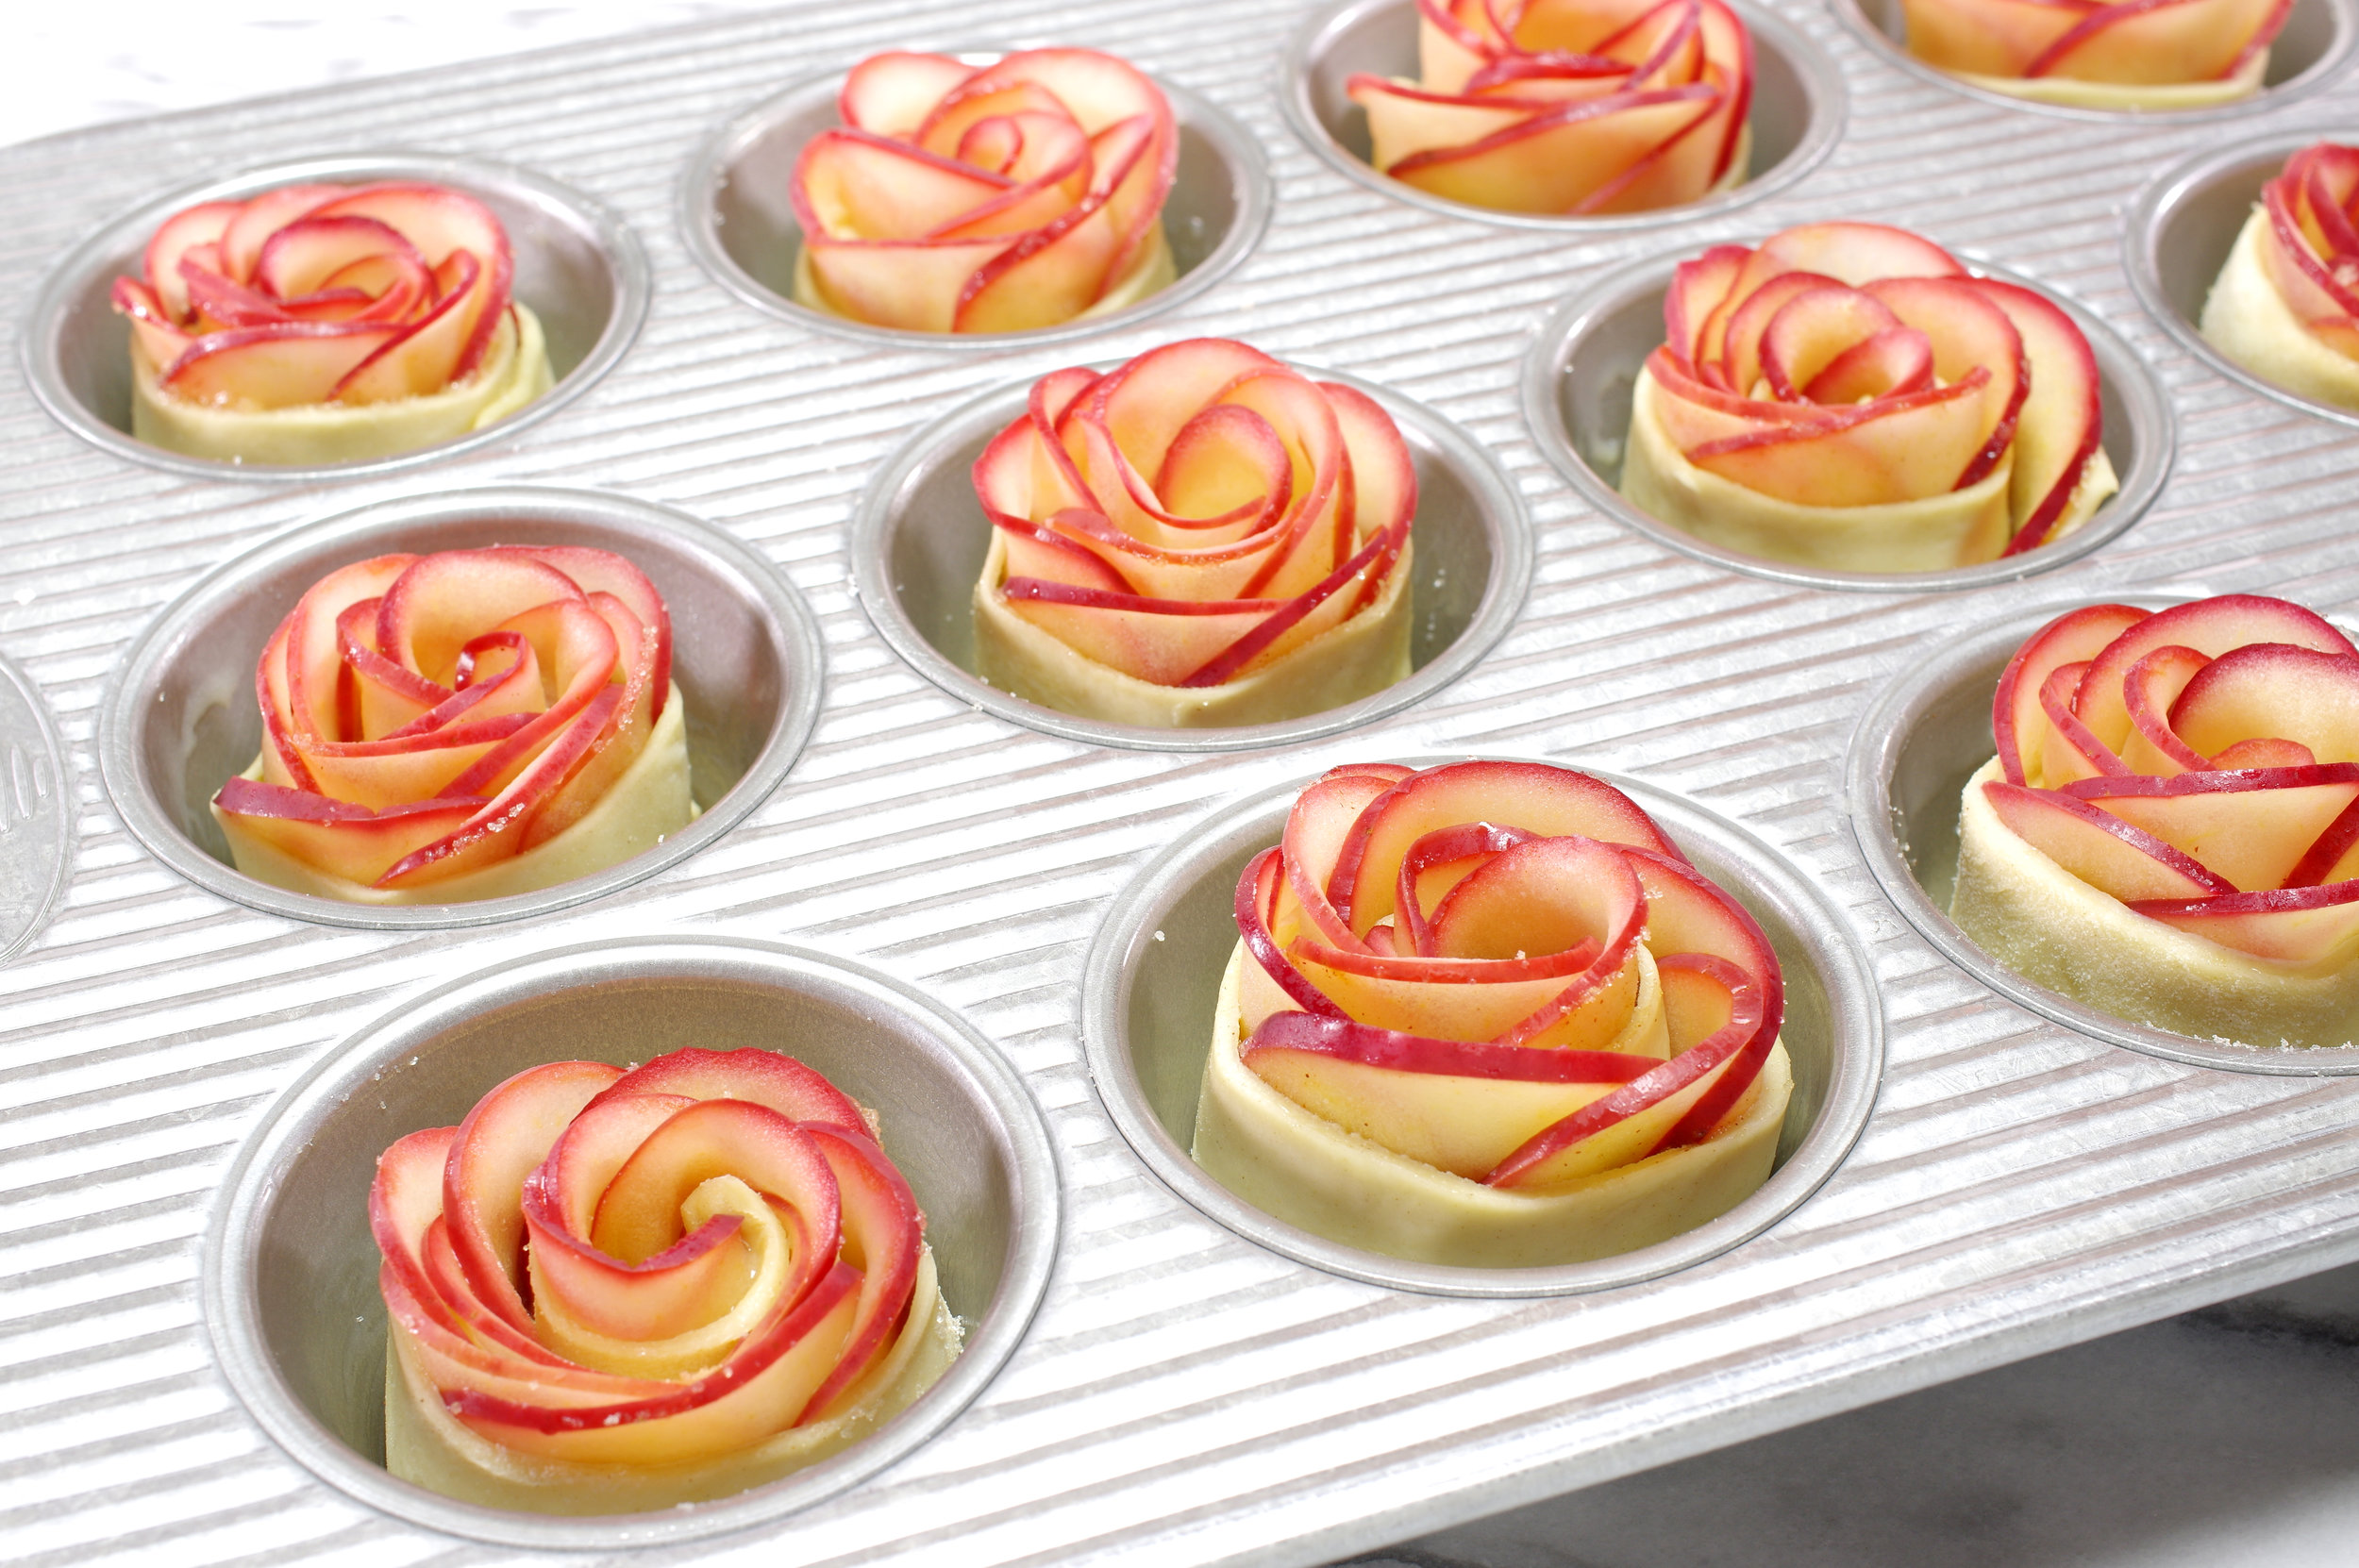 Roses_Ready_To_Bake.jpg